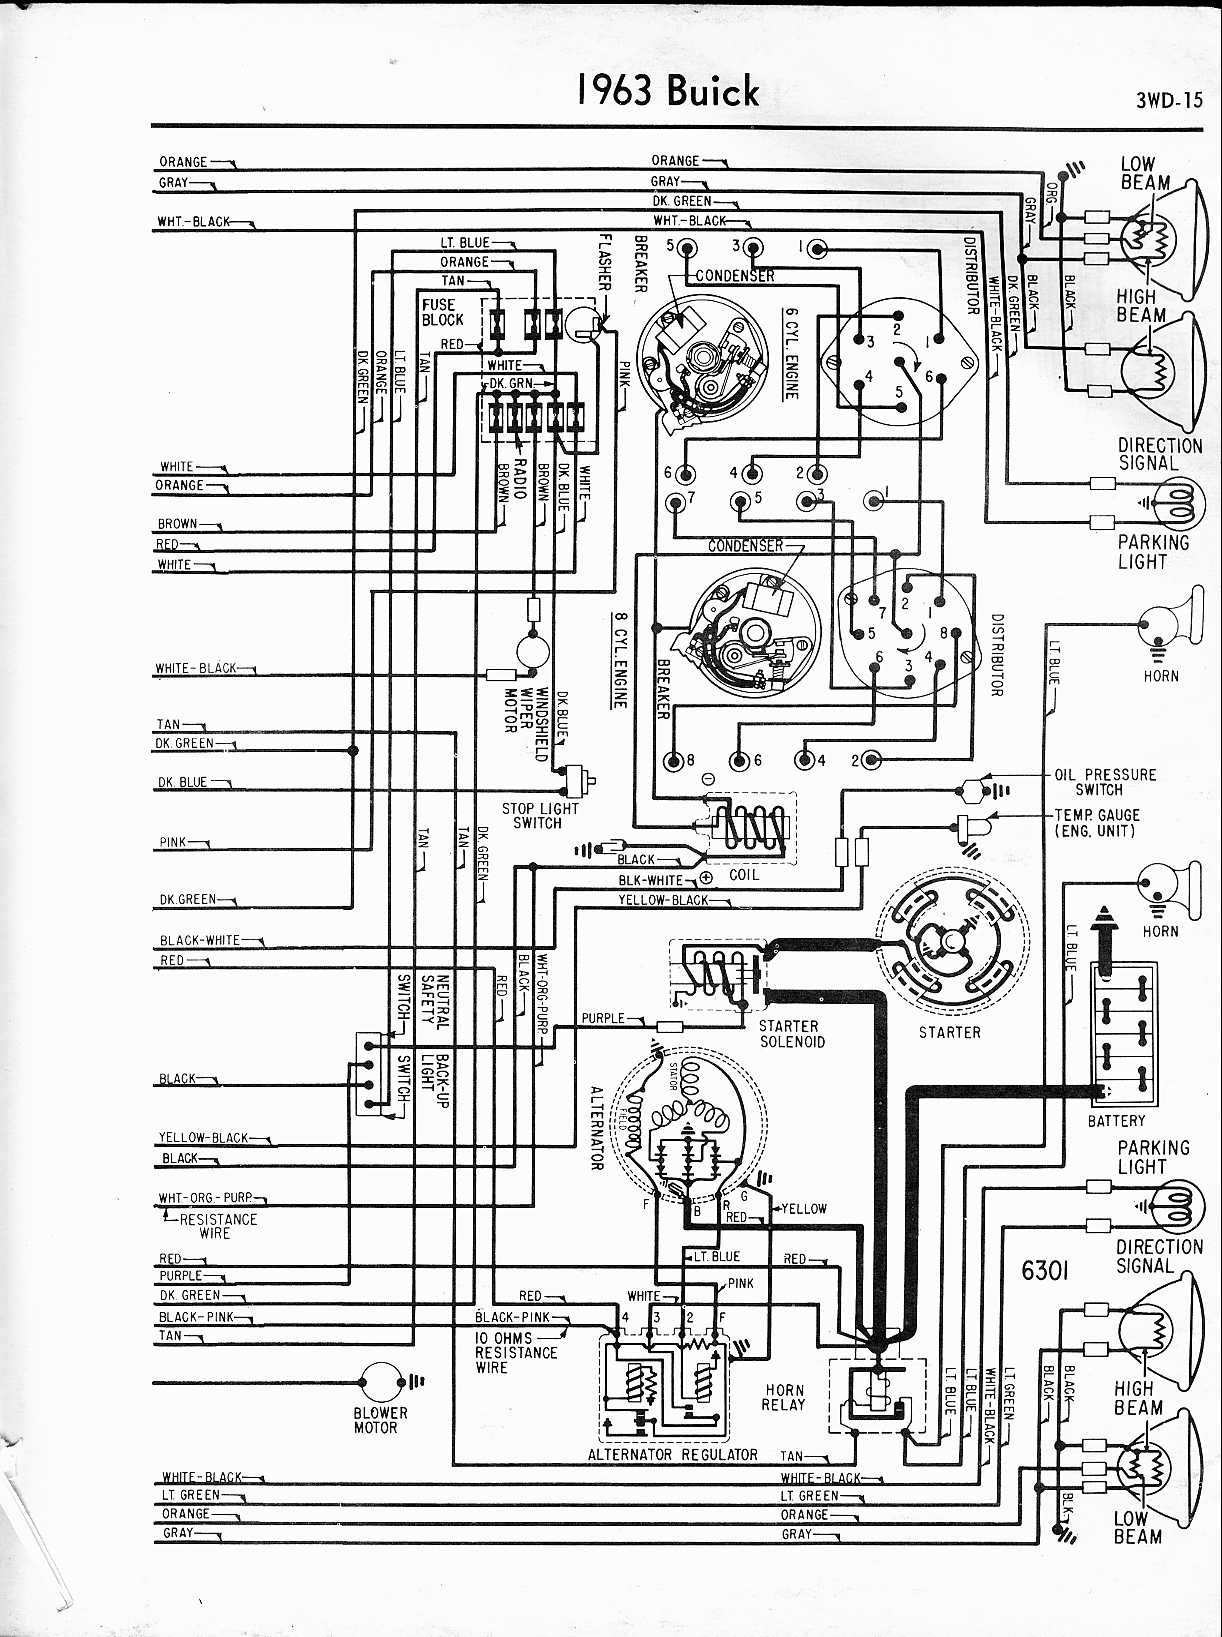 besides chevy starter wiring diagram on 1970 buick skylark fuse box rh  abetter pw 1997 Buick LeSabre Fuse Box Diagram 2001 Buick LeSabre Fuse Box  Diagram